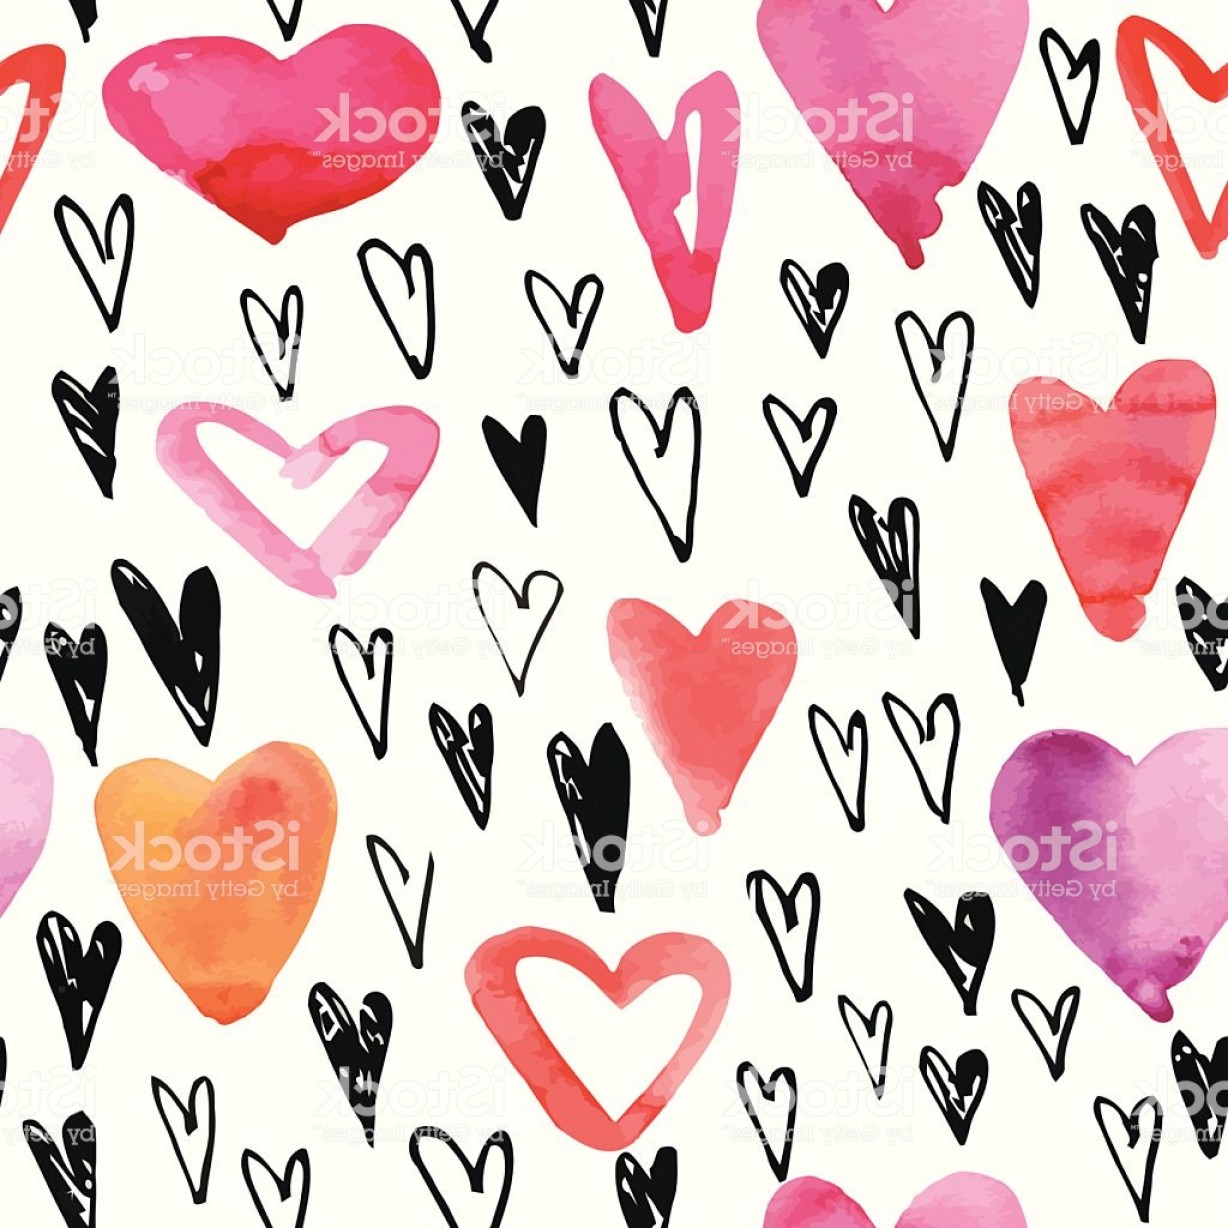 Heart In Hand Vector Clip Art: These Hearts Are Hand Drawn With Different Colors Gm